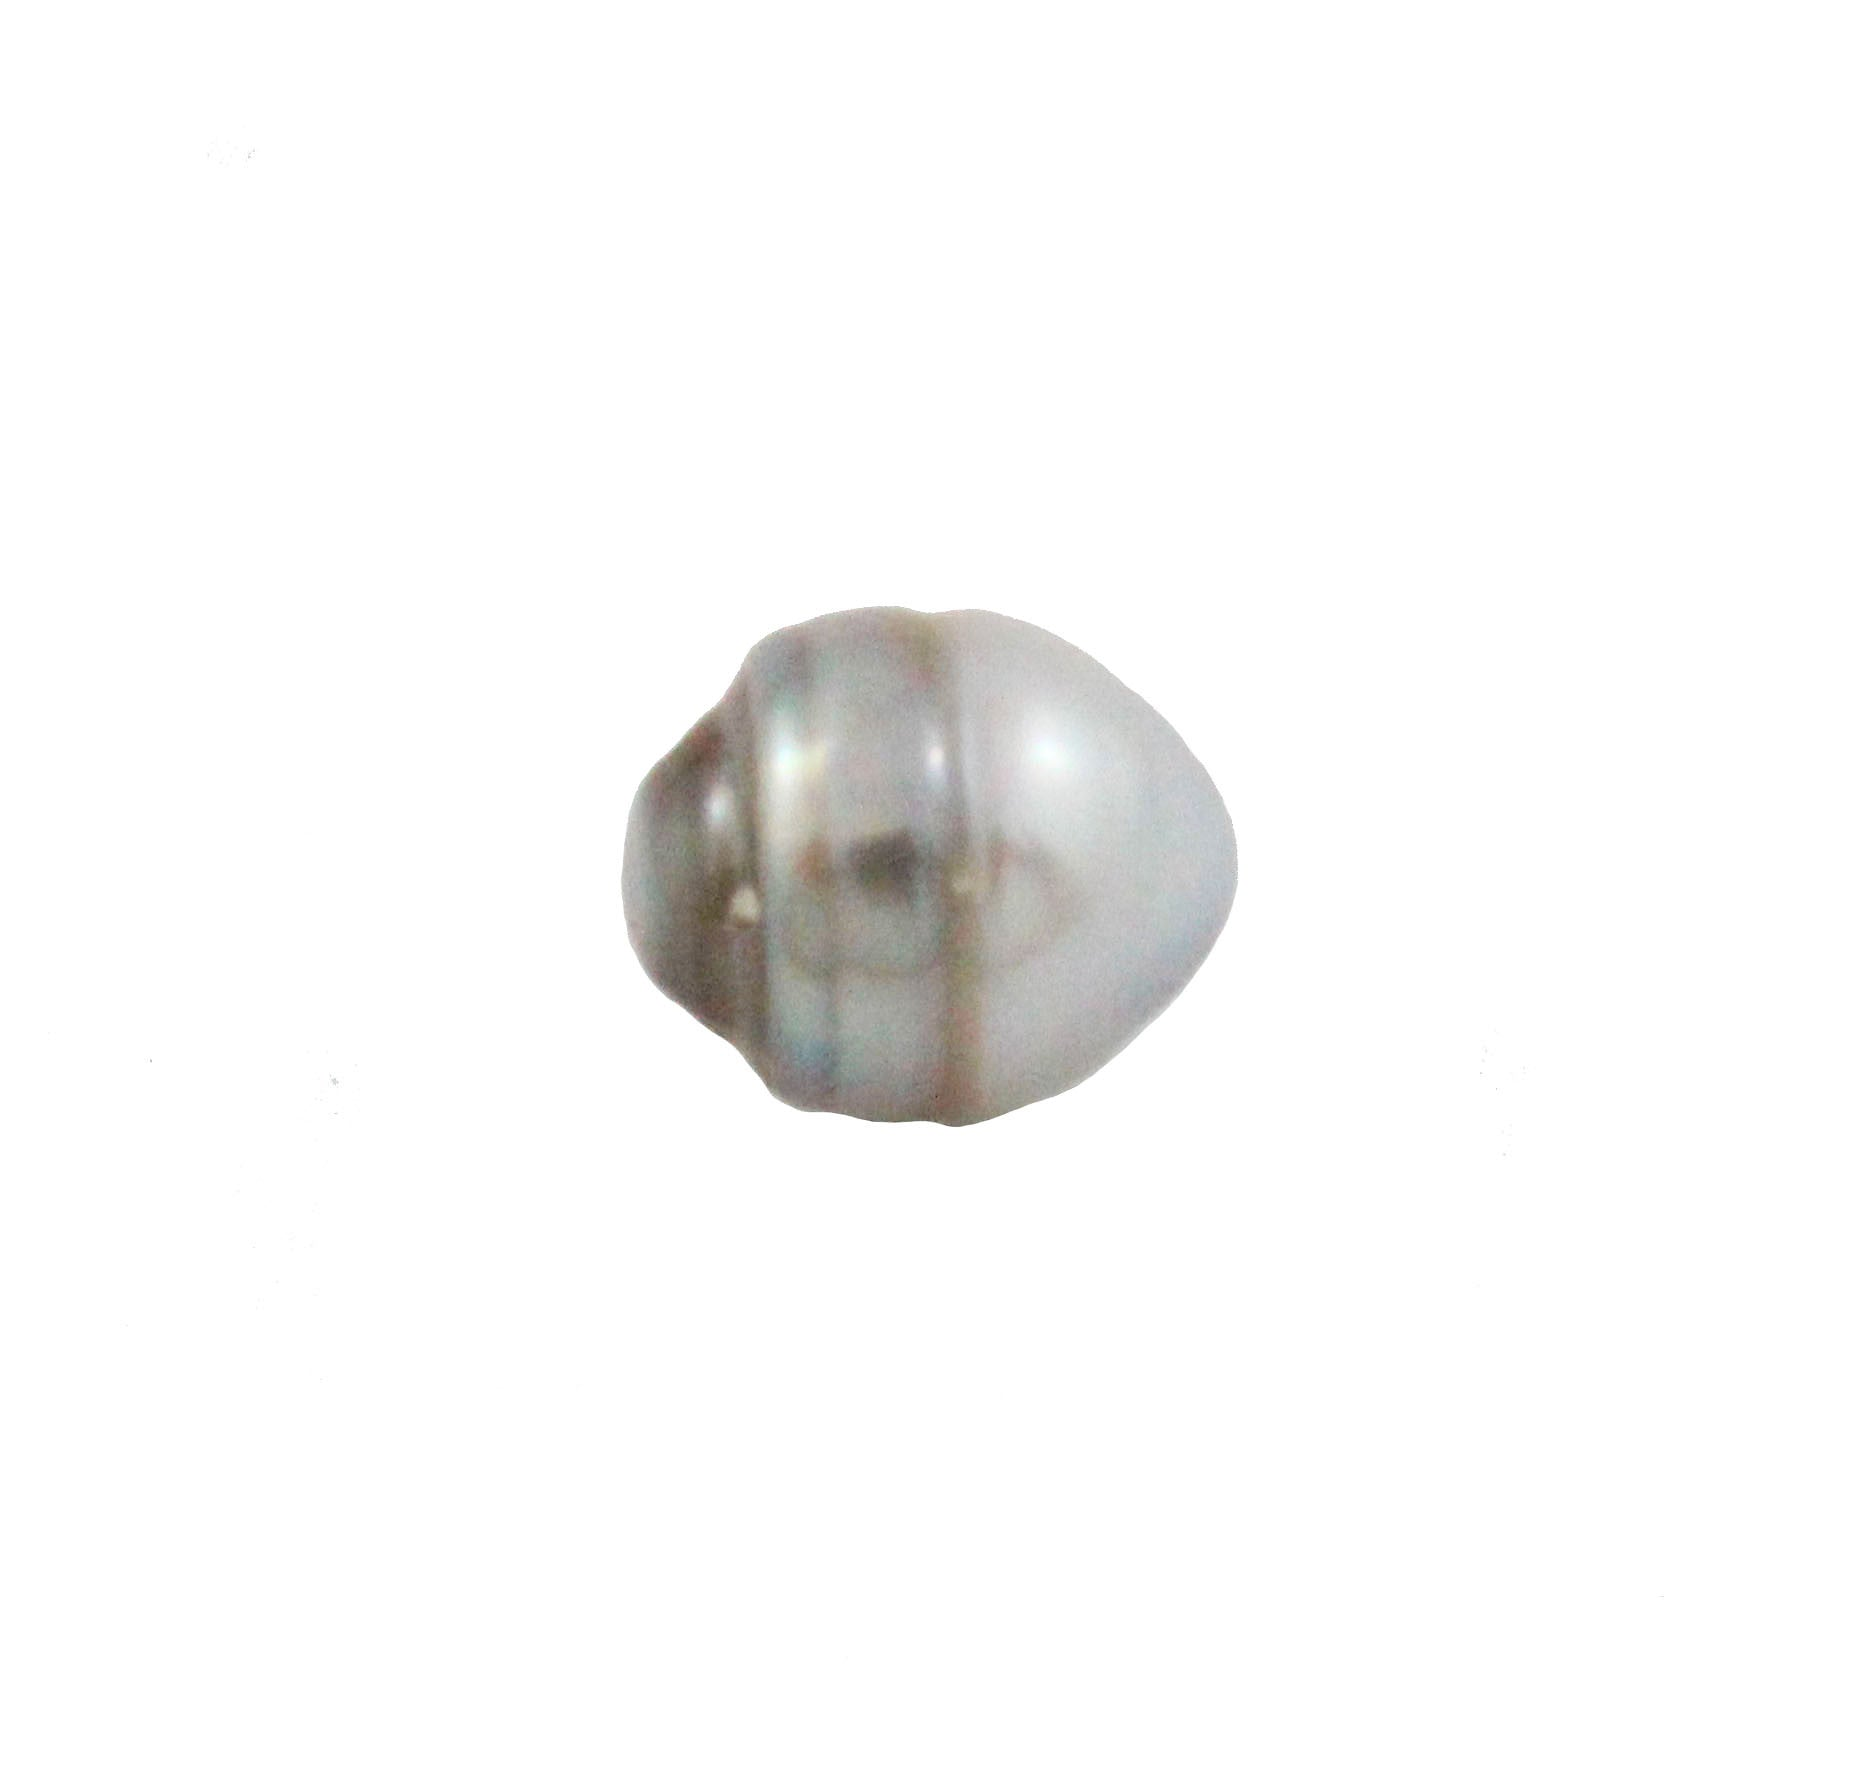 Tahitian pearl undrilled 0.98gr mm 10.14x8.34mm - Purchase only with custom order - Sarah Hughes - 4